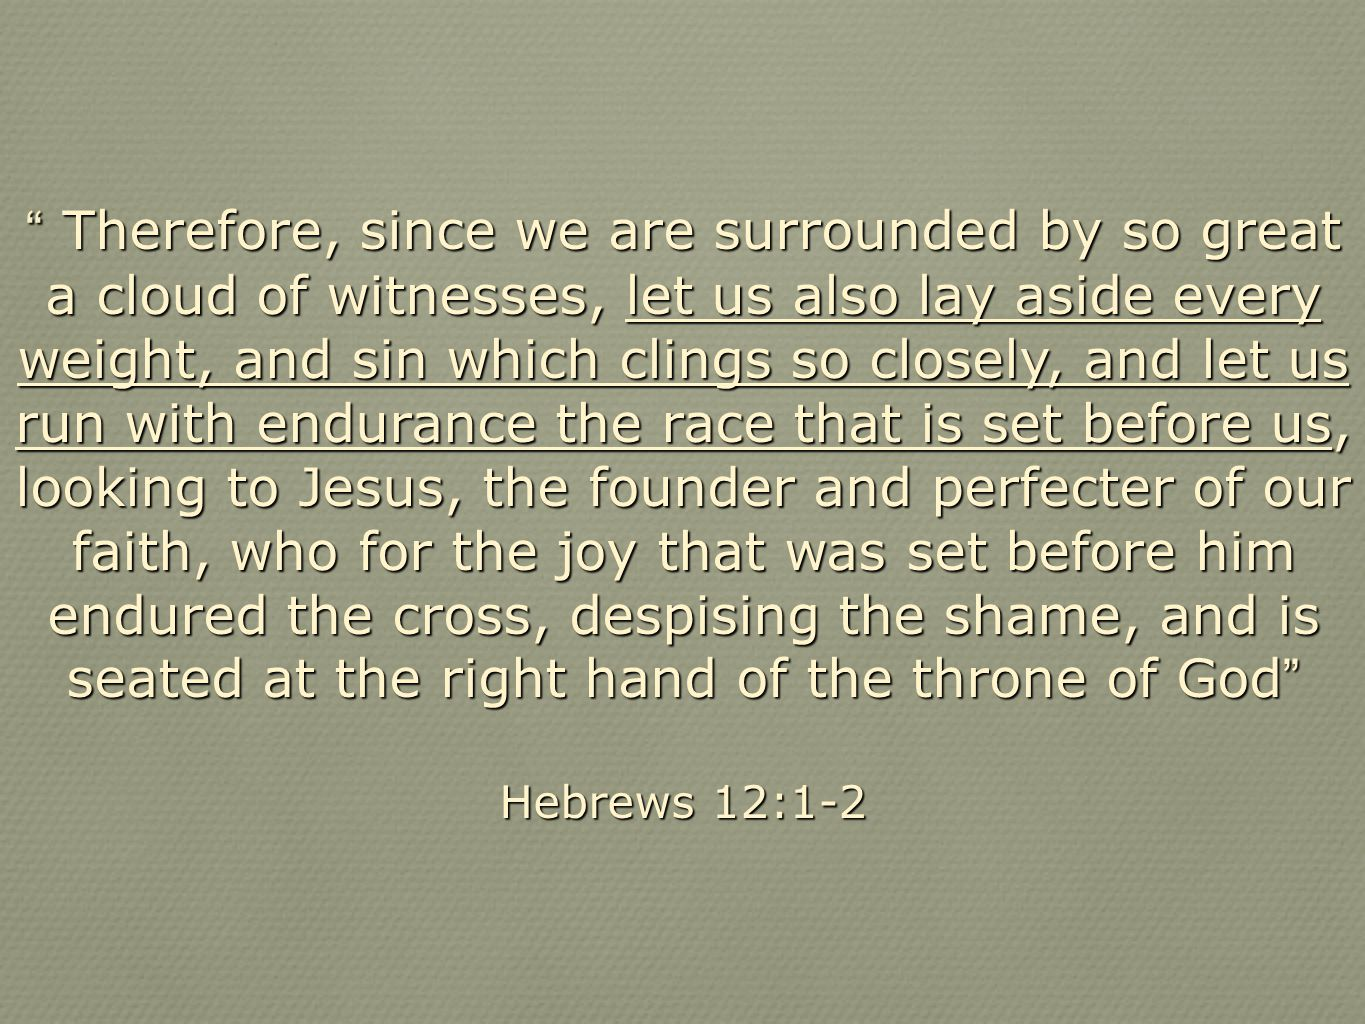 Therefore, since we are surrounded by so great a cloud of witnesses, let us also lay aside every weight, and sin which clings so closely, and let us run with endurance the race that is set before us, looking to Jesus, the founder and perfecter of our faith, who for the joy that was set before him endured the cross, despising the shame, and is seated at the right hand of the throne of God